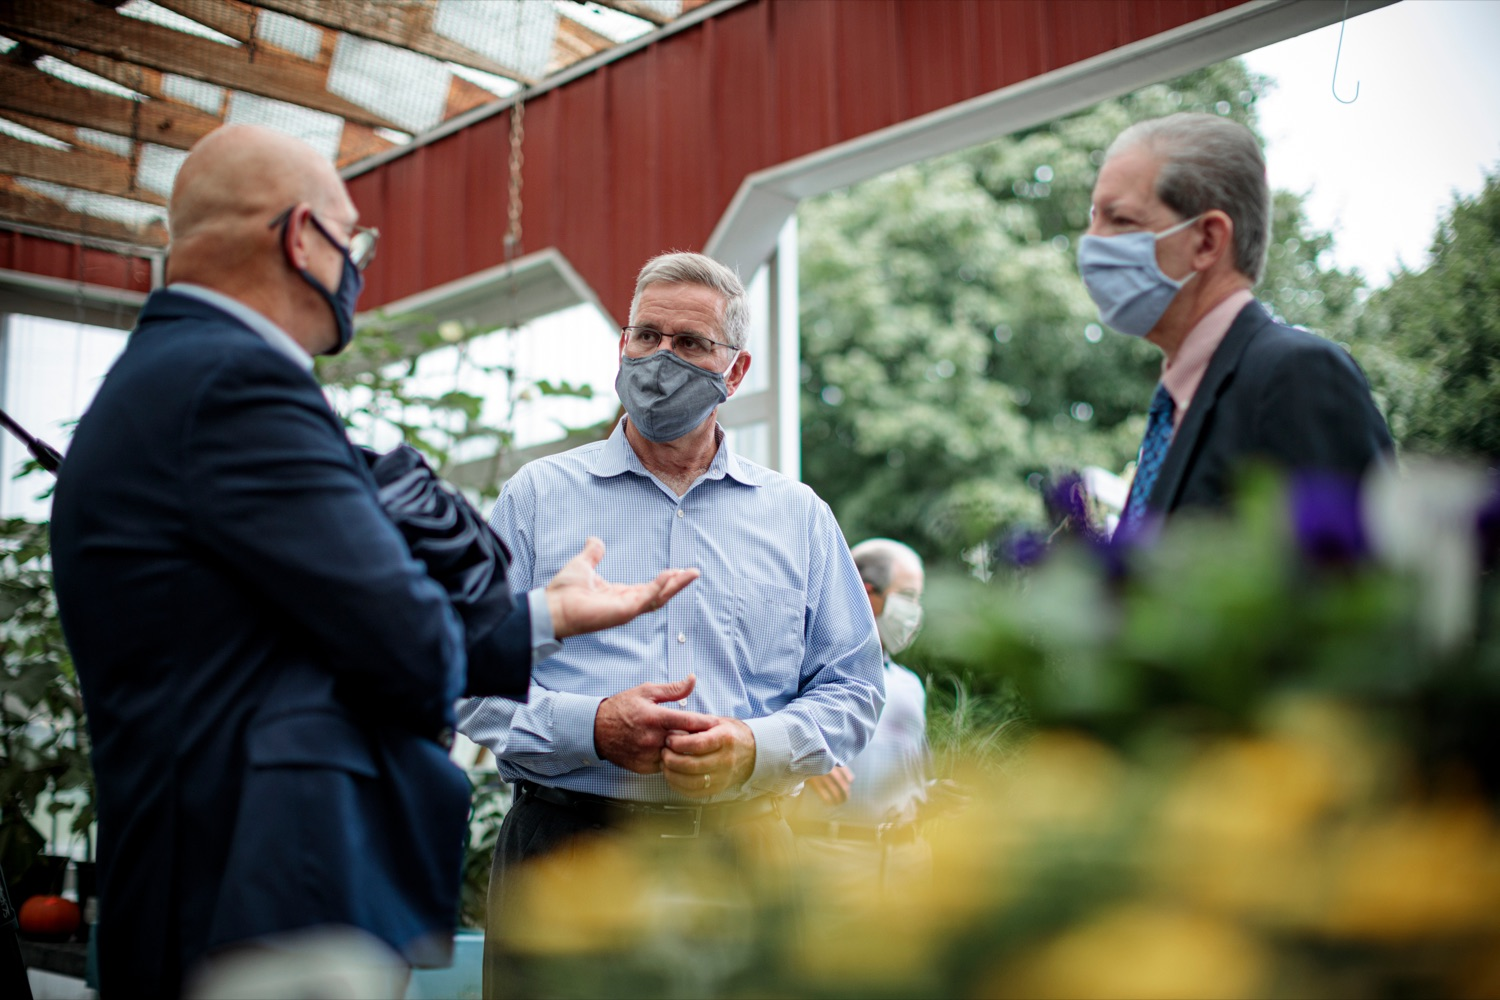 "<a href=""https://filesource.wostreaming.net/commonwealthofpa/photo/18235_AGRIC_SLF_NK_001.jpg"" target=""_blank"">⇣ Download Photo<br></a>Agriculture Secretary Russell Redding, center, speaks with Rick Roush, Penn State dean of agriculture, left, and Carlos Martinez, executive director of field operations for the USDA, right, at Cherry Hill Orchard Outlet and Garden Center in Lancaster on Thursday, September 10, 2020."